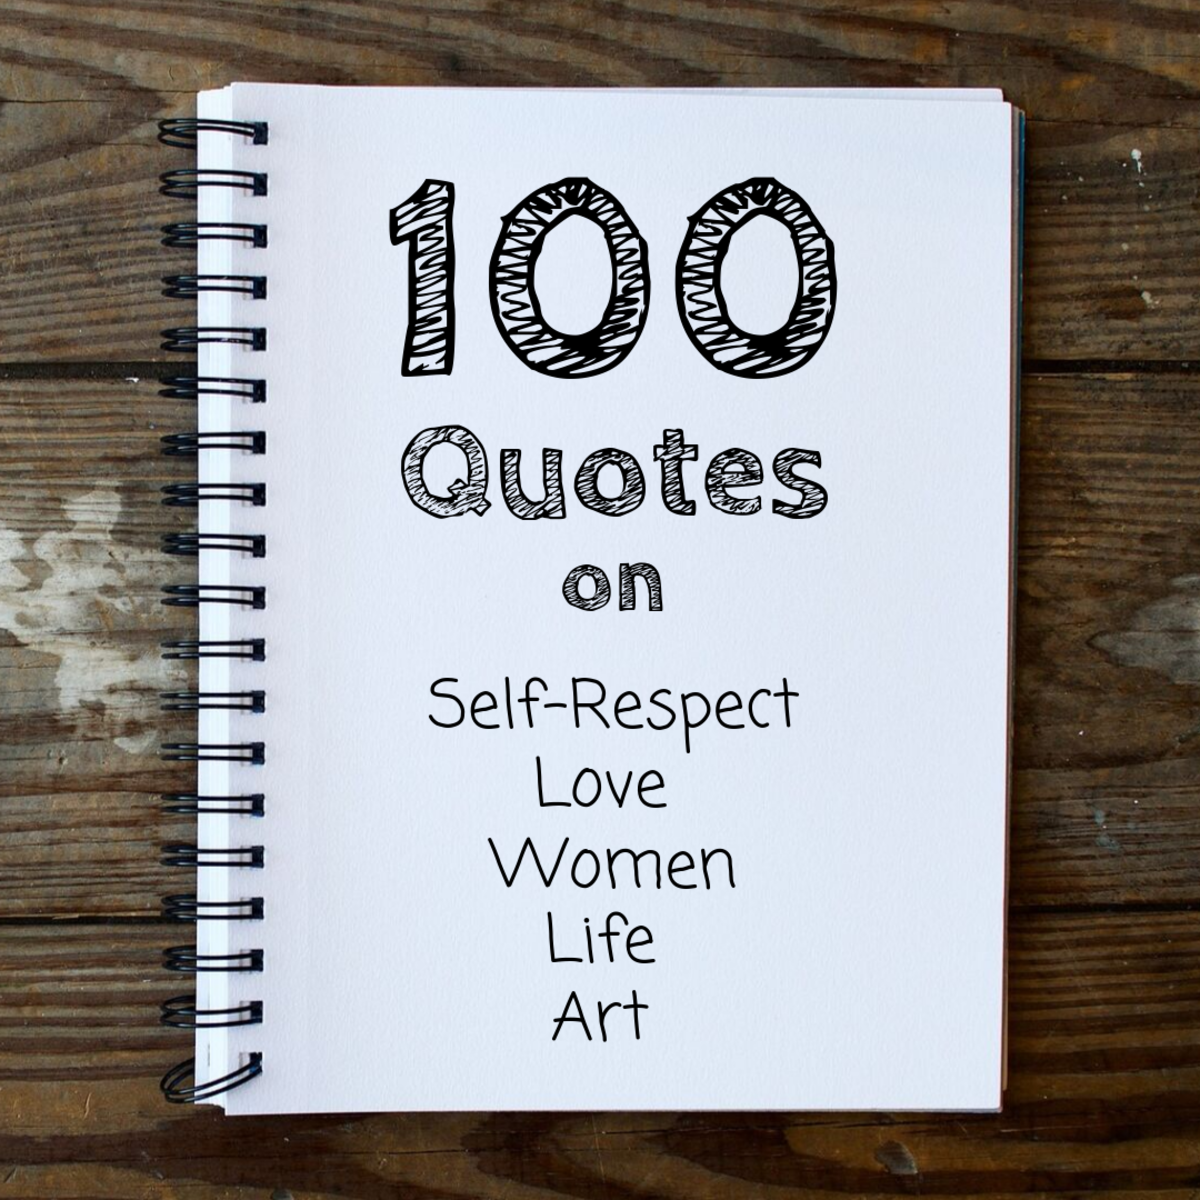 100 Best Quotes in My Notebook: Sayings on Art, Love, and More